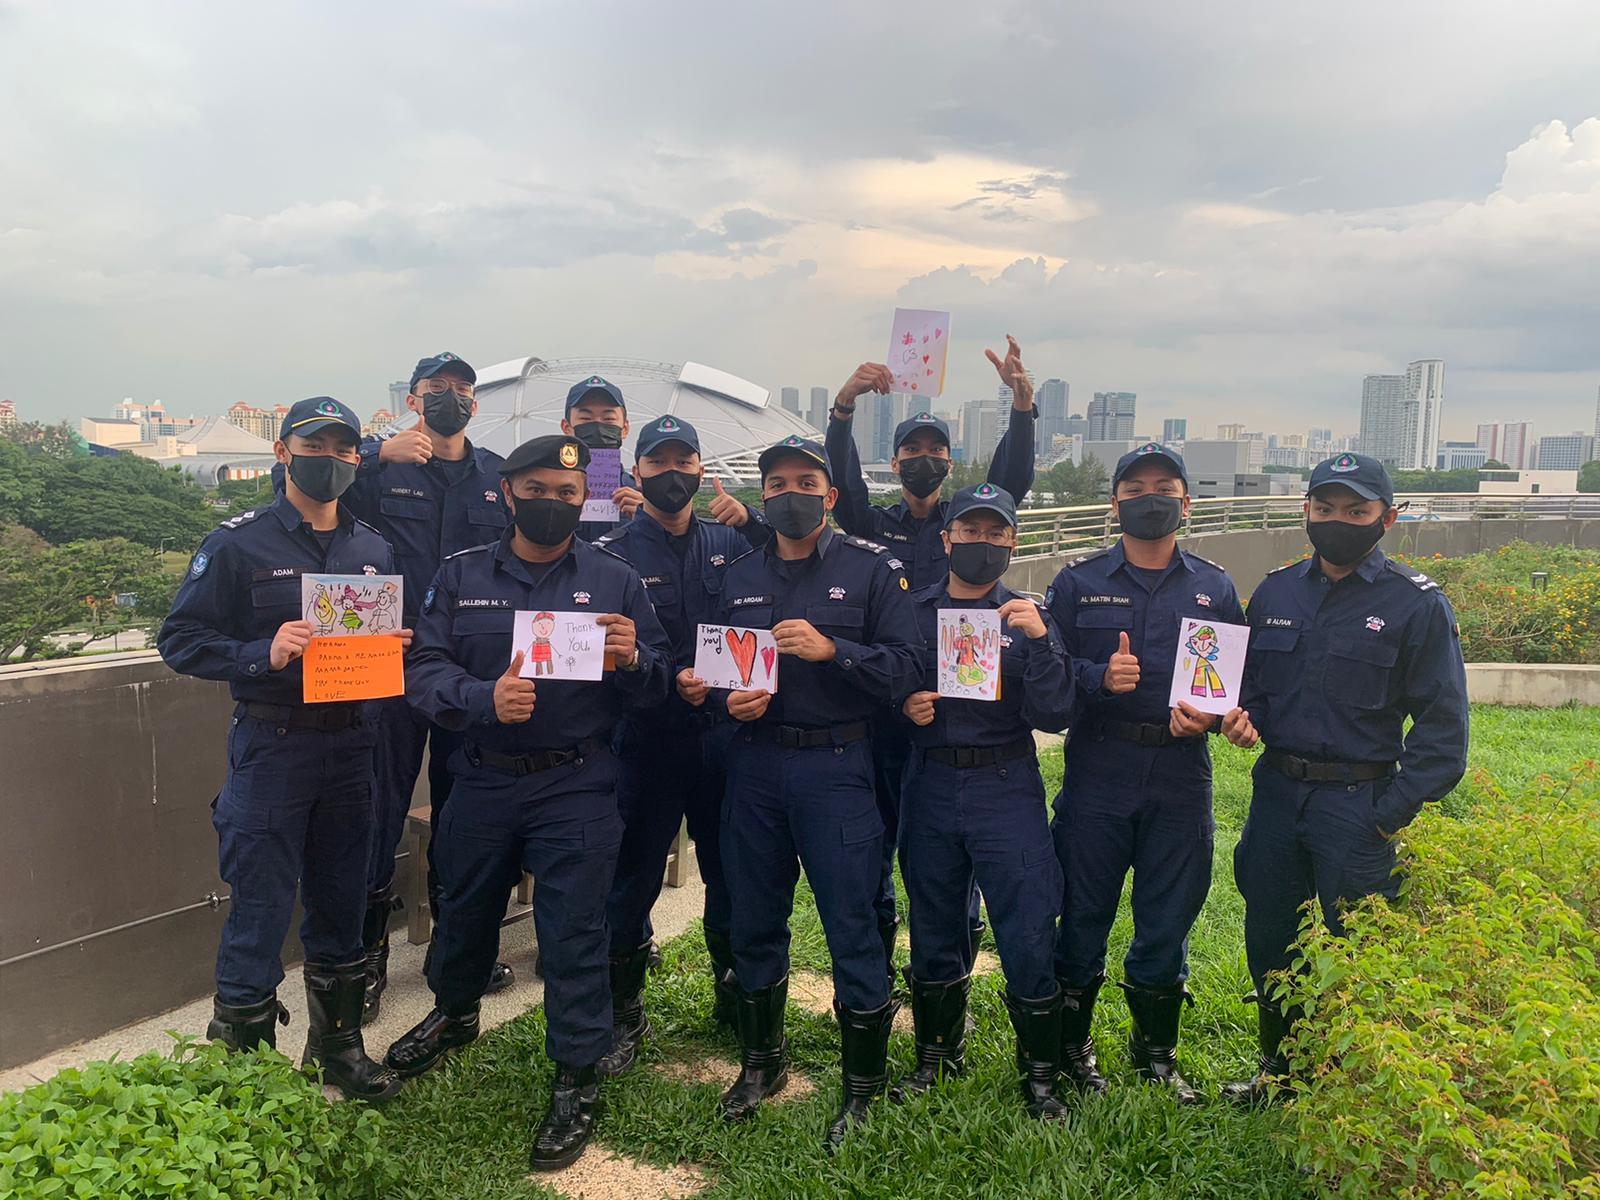 Firefighters with Appreciation Cards by OWIS Early Childhood Students